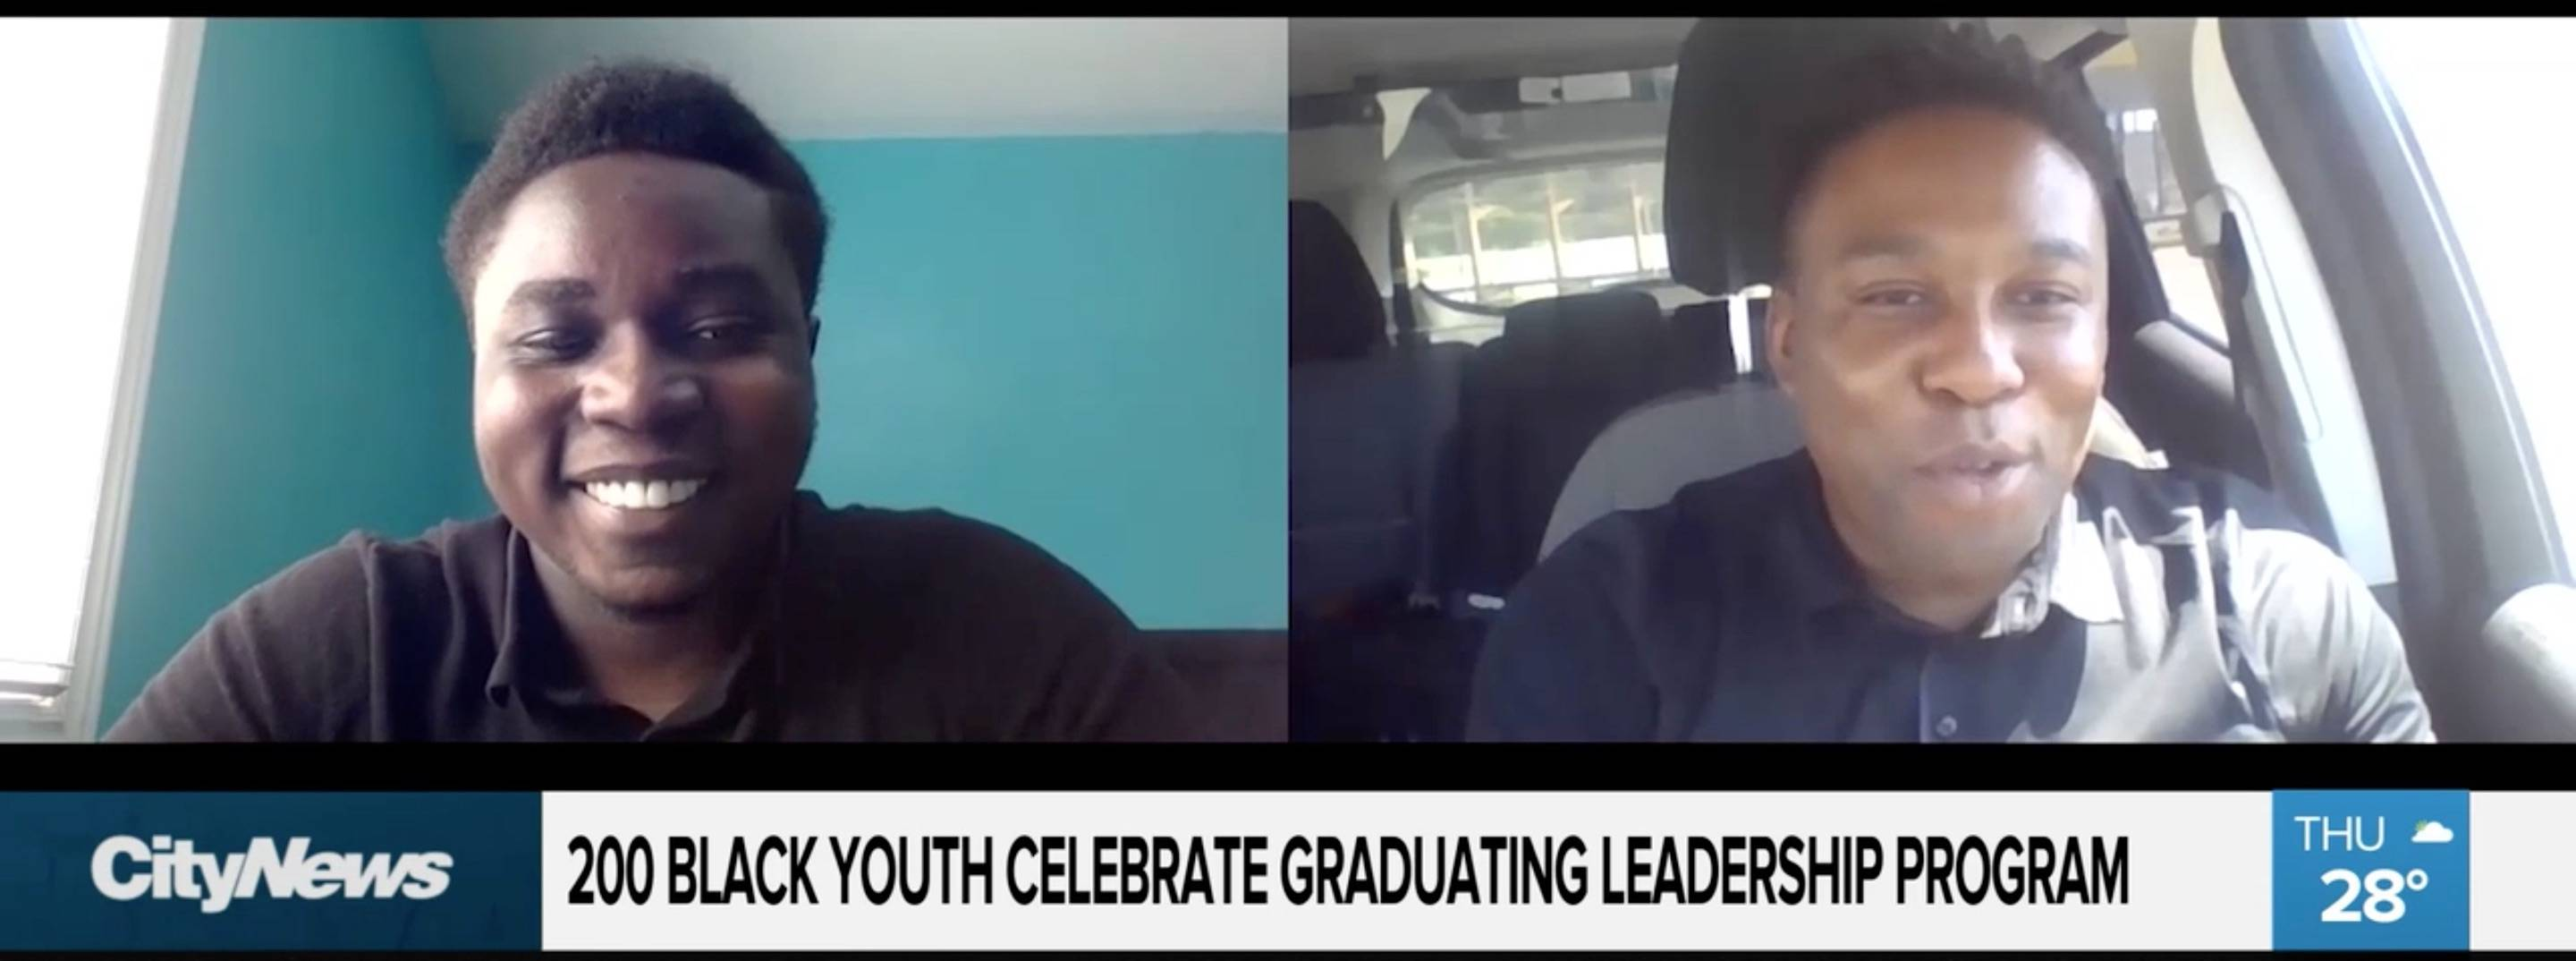 Celebrating Youth Leadership Against Anti-Black Racism